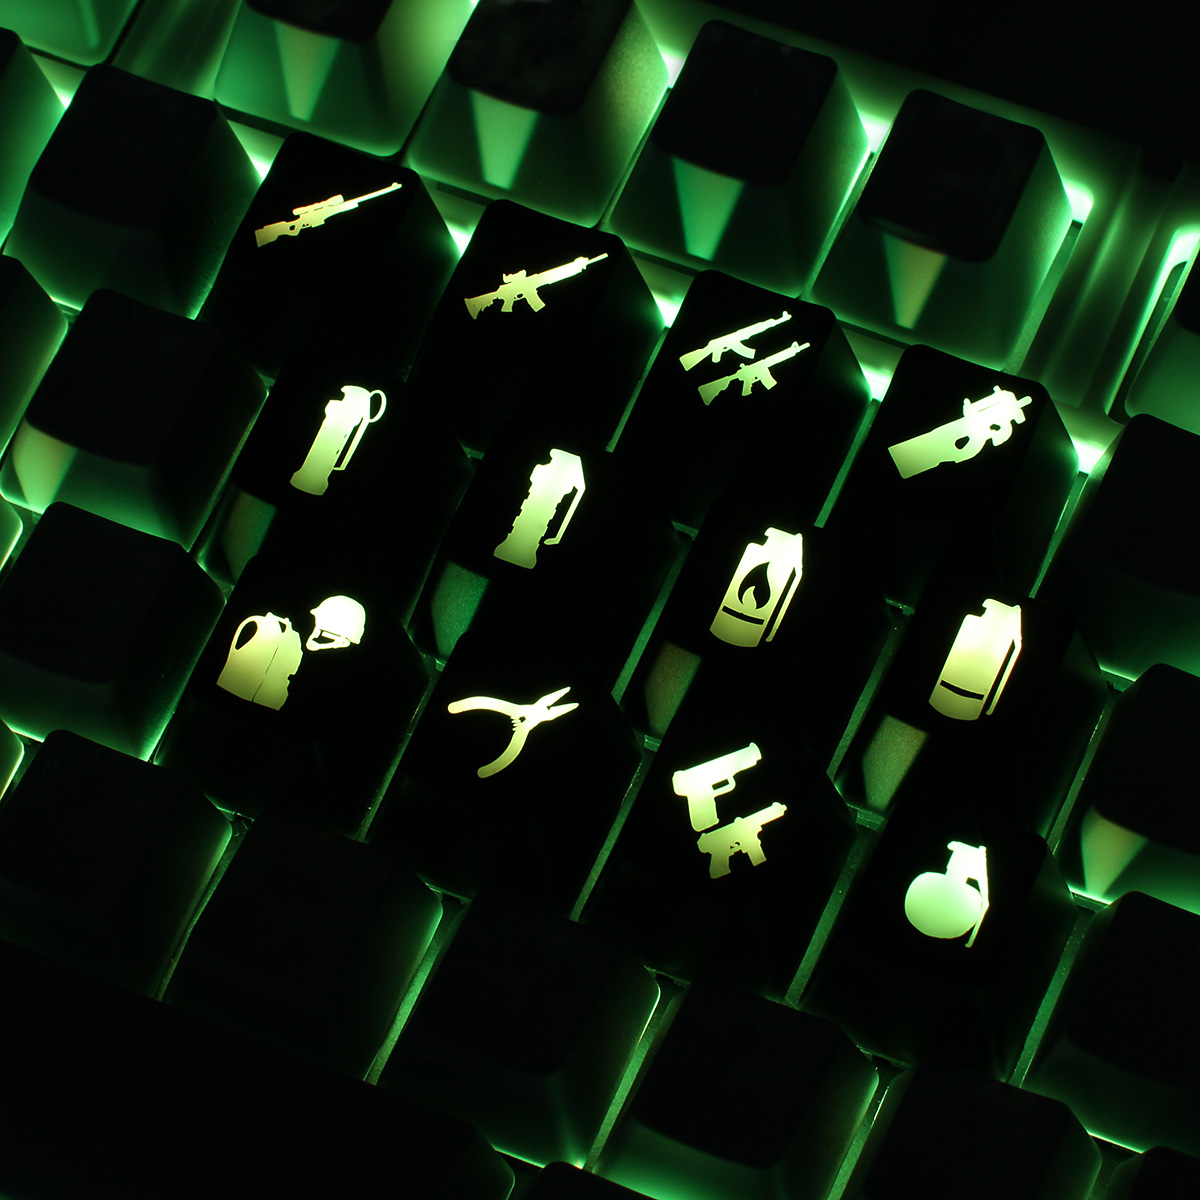 Custom Backlight Compatible Keycap for backlit keyboard